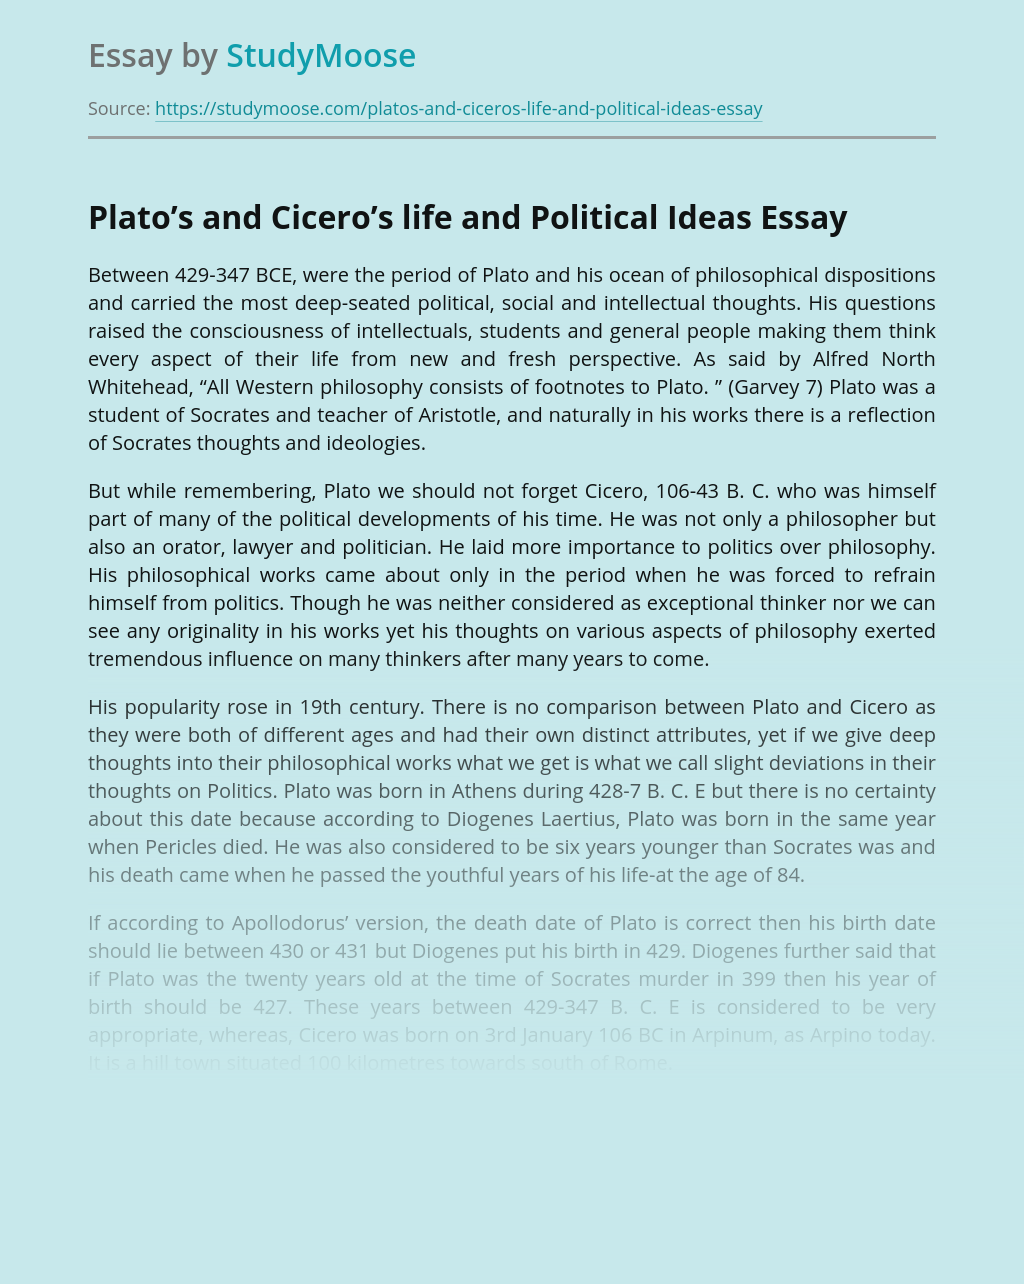 Plato's and Cicero's life and Political Ideas